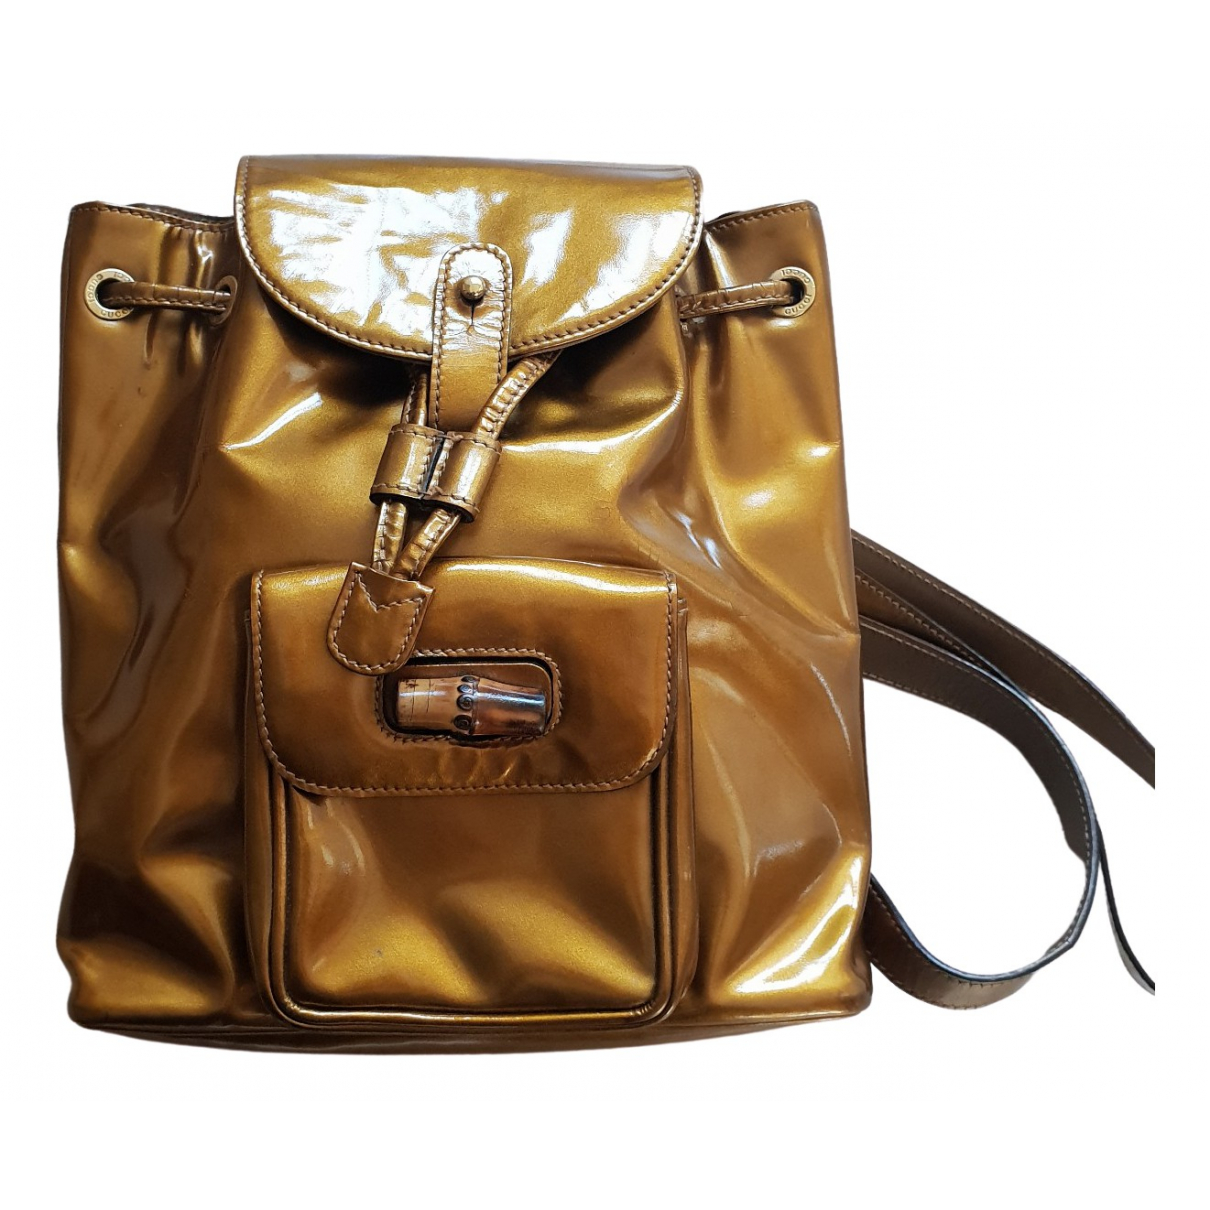 Gucci Bamboo Gold Patent leather backpack for Women \N